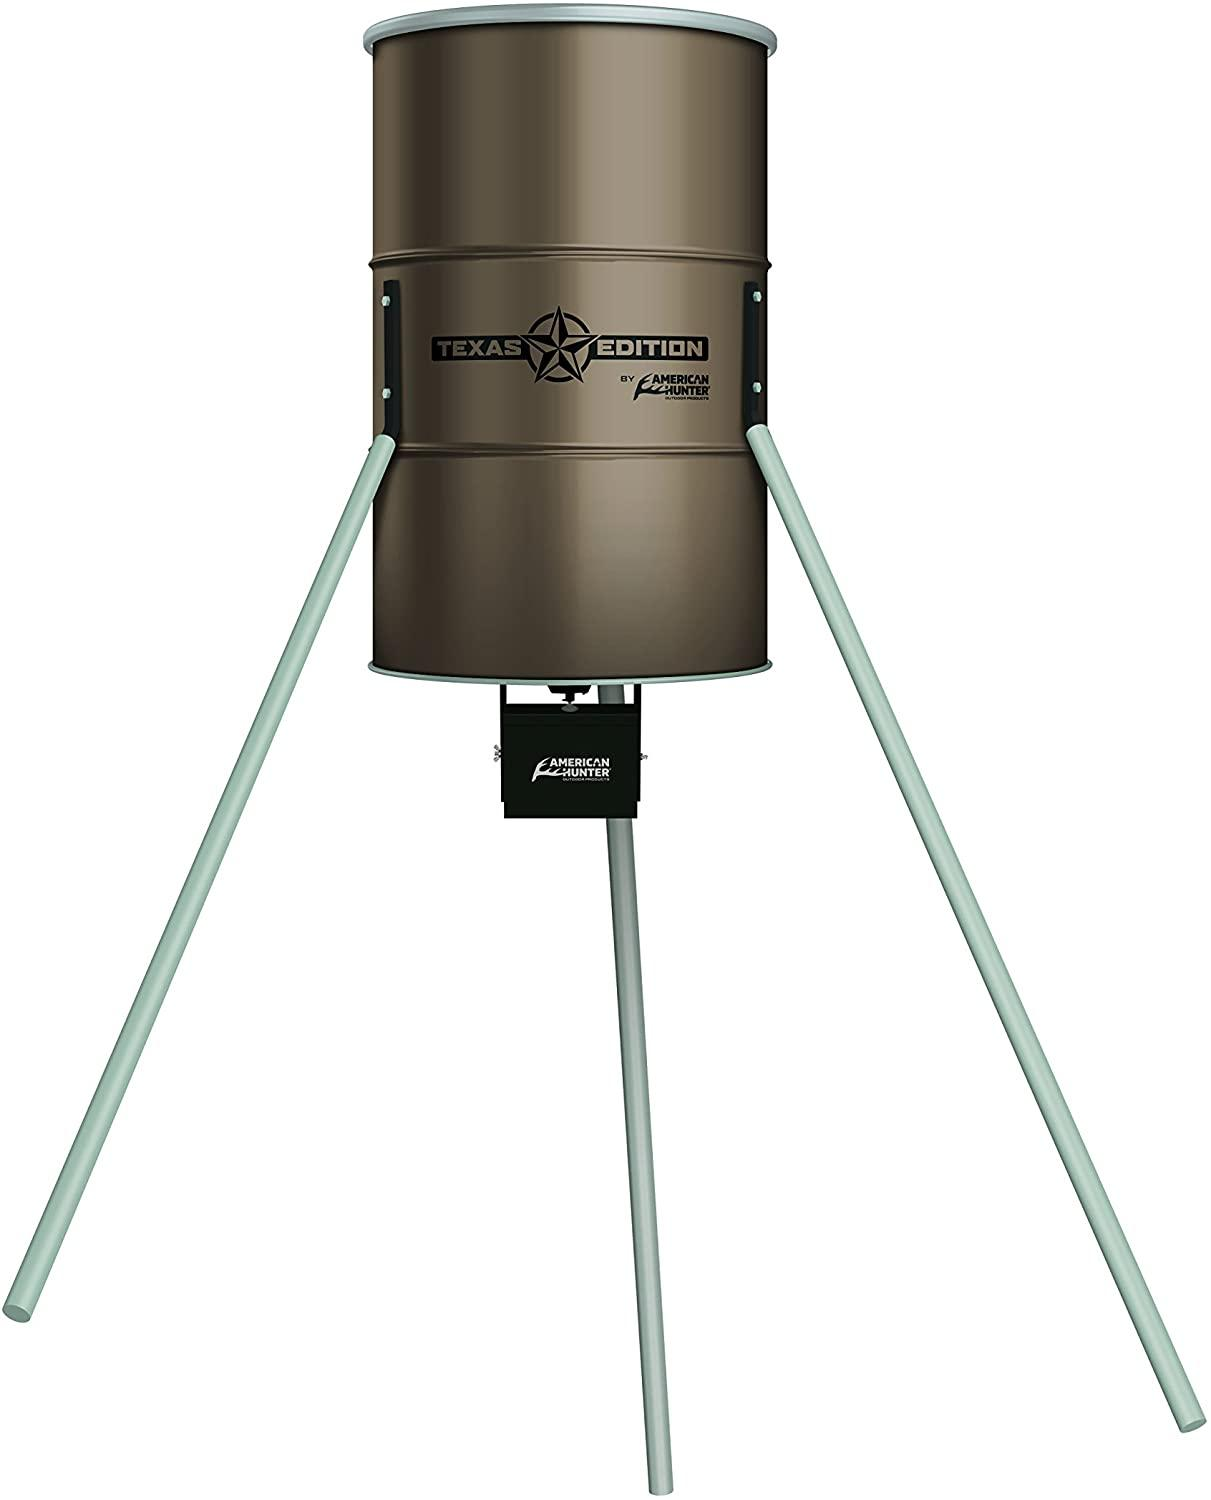 American hunter deer feeders are hunter's favorite due to big capacity and extreme durability. Find top brand deer feeder reviews here.